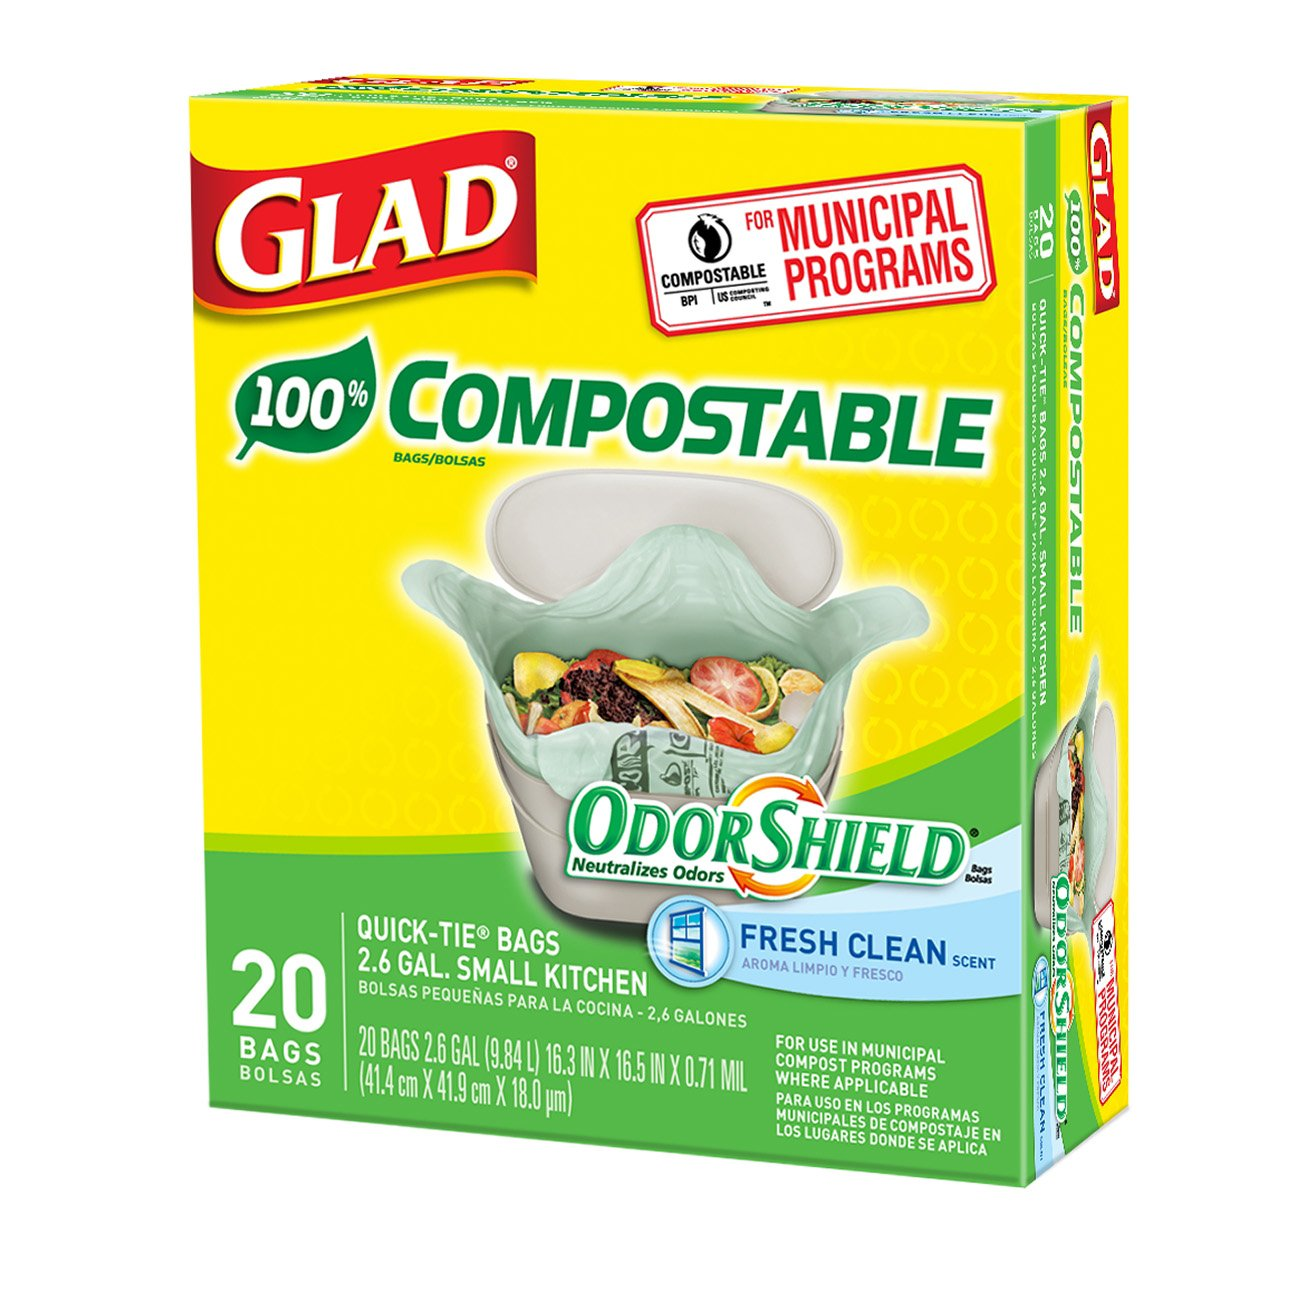 Glad Odorshield Small Kitchen Compostable Trash Bags 2 6 Gallon 20 Count Pack Ebay